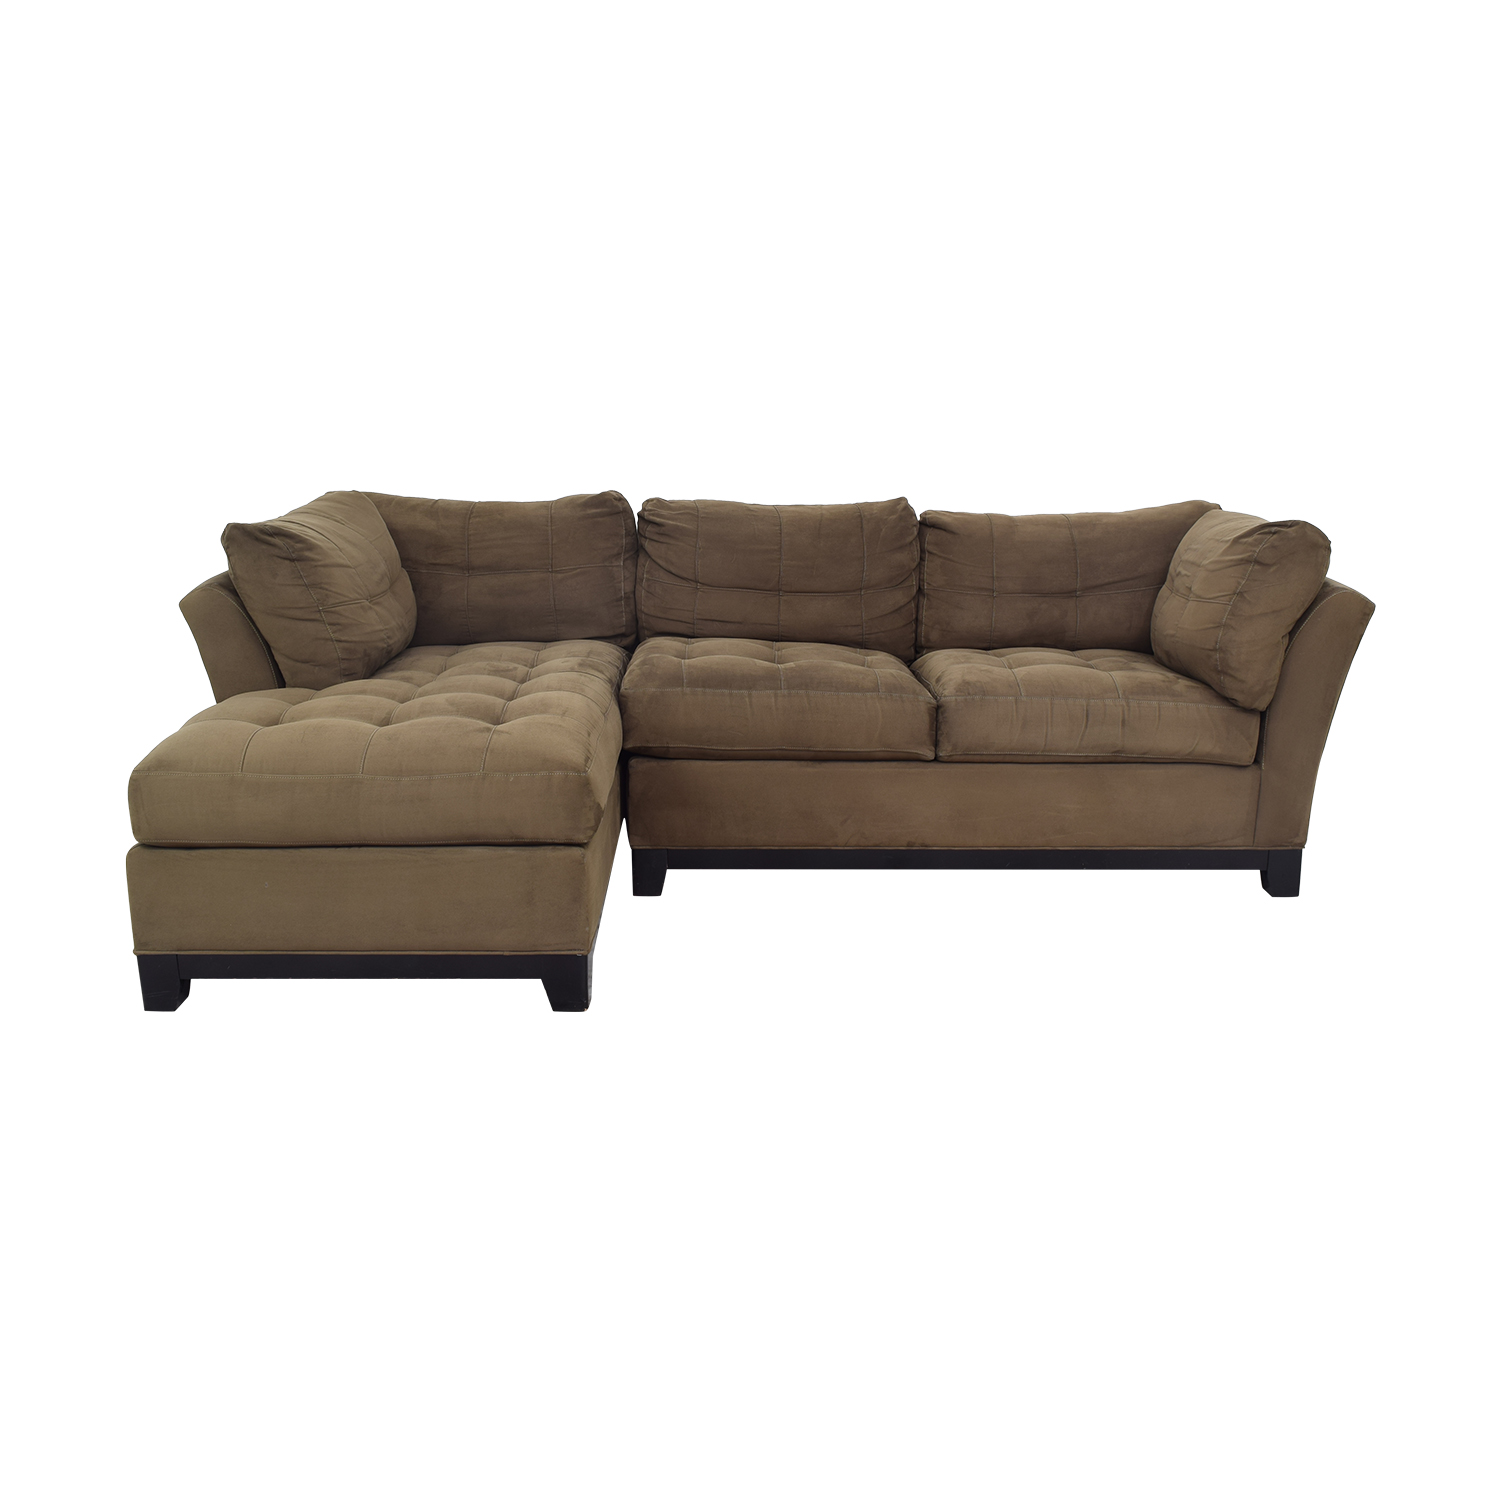 Cindy Crawford Home Cindy Crawford Home Metropolis Sectional Sofa coupon